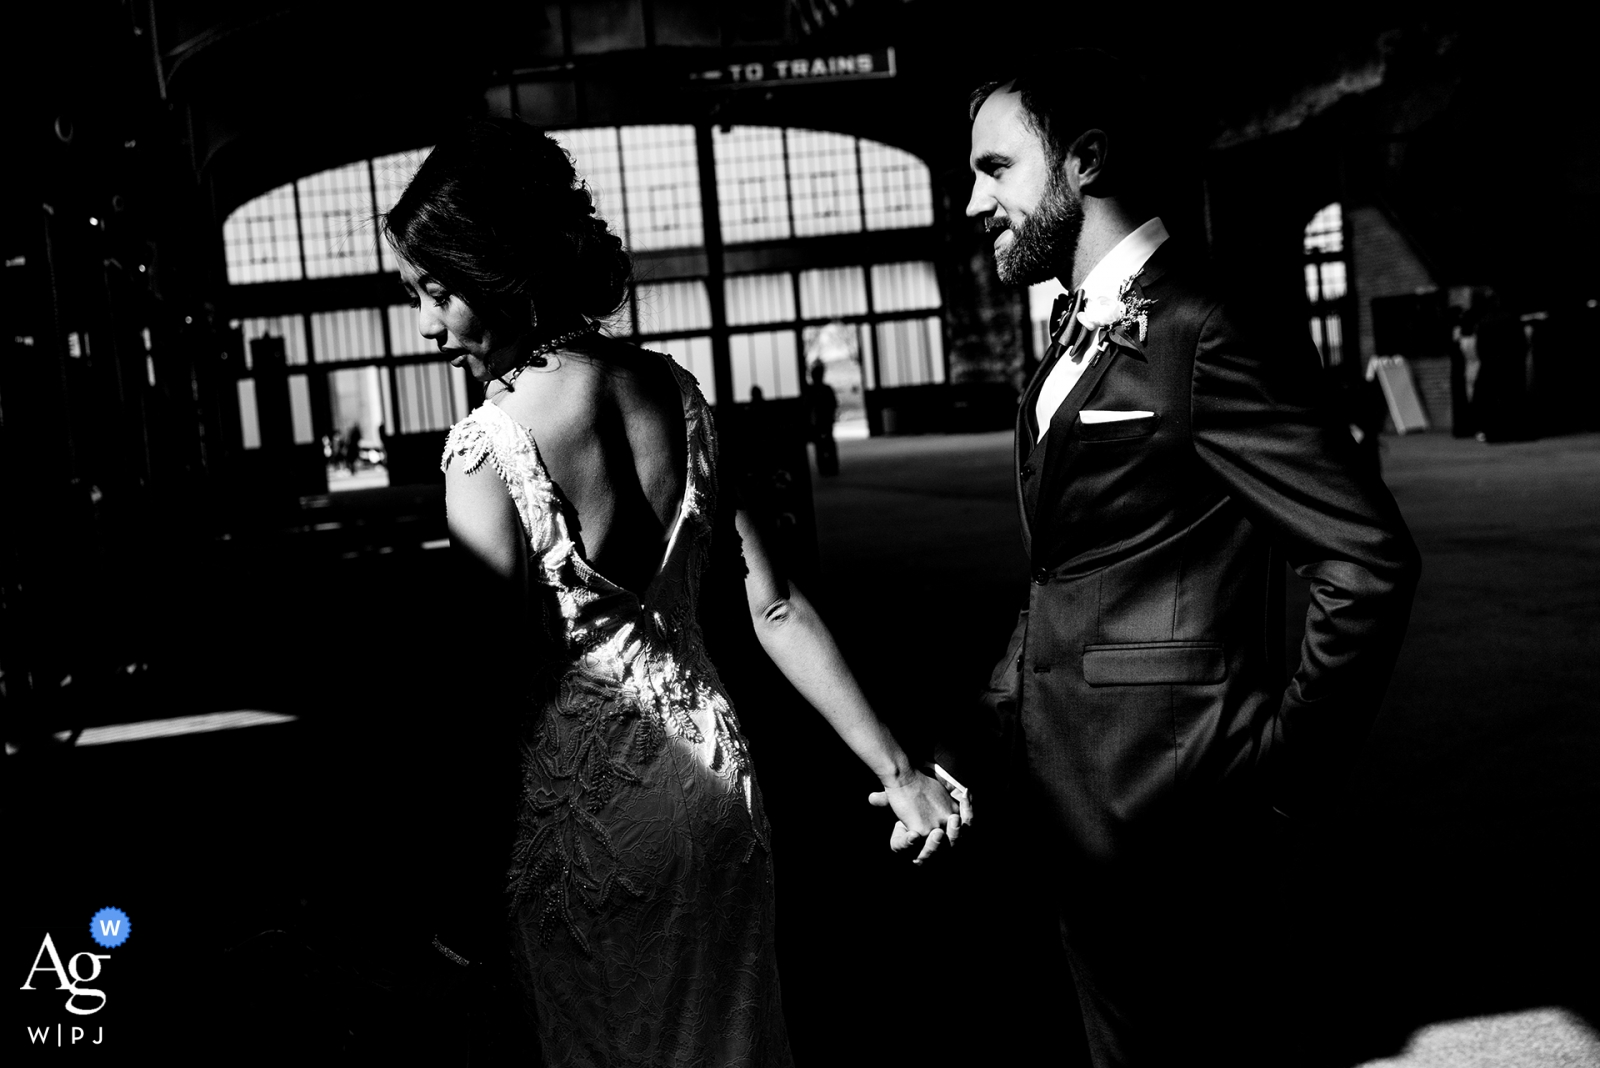 maritime parc, nj wedding photographer | train station portrait session on wedding day in black-and-white